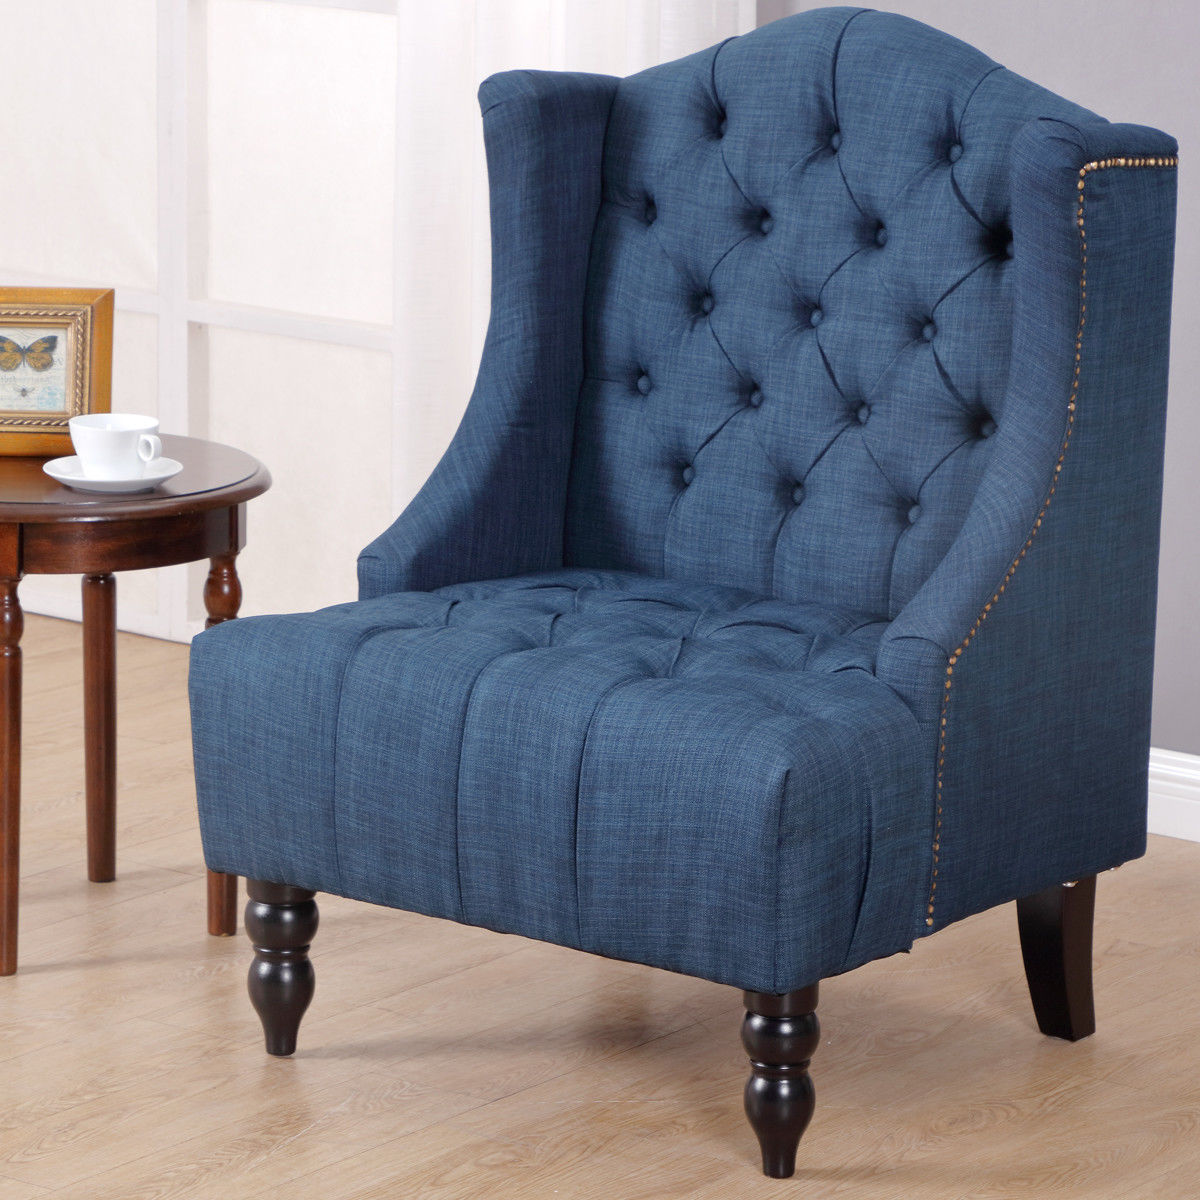 Costway Modern Tall Wingback Tufted Accent Armchair Fabric Vintage Chair Nailhead Navy by Costway